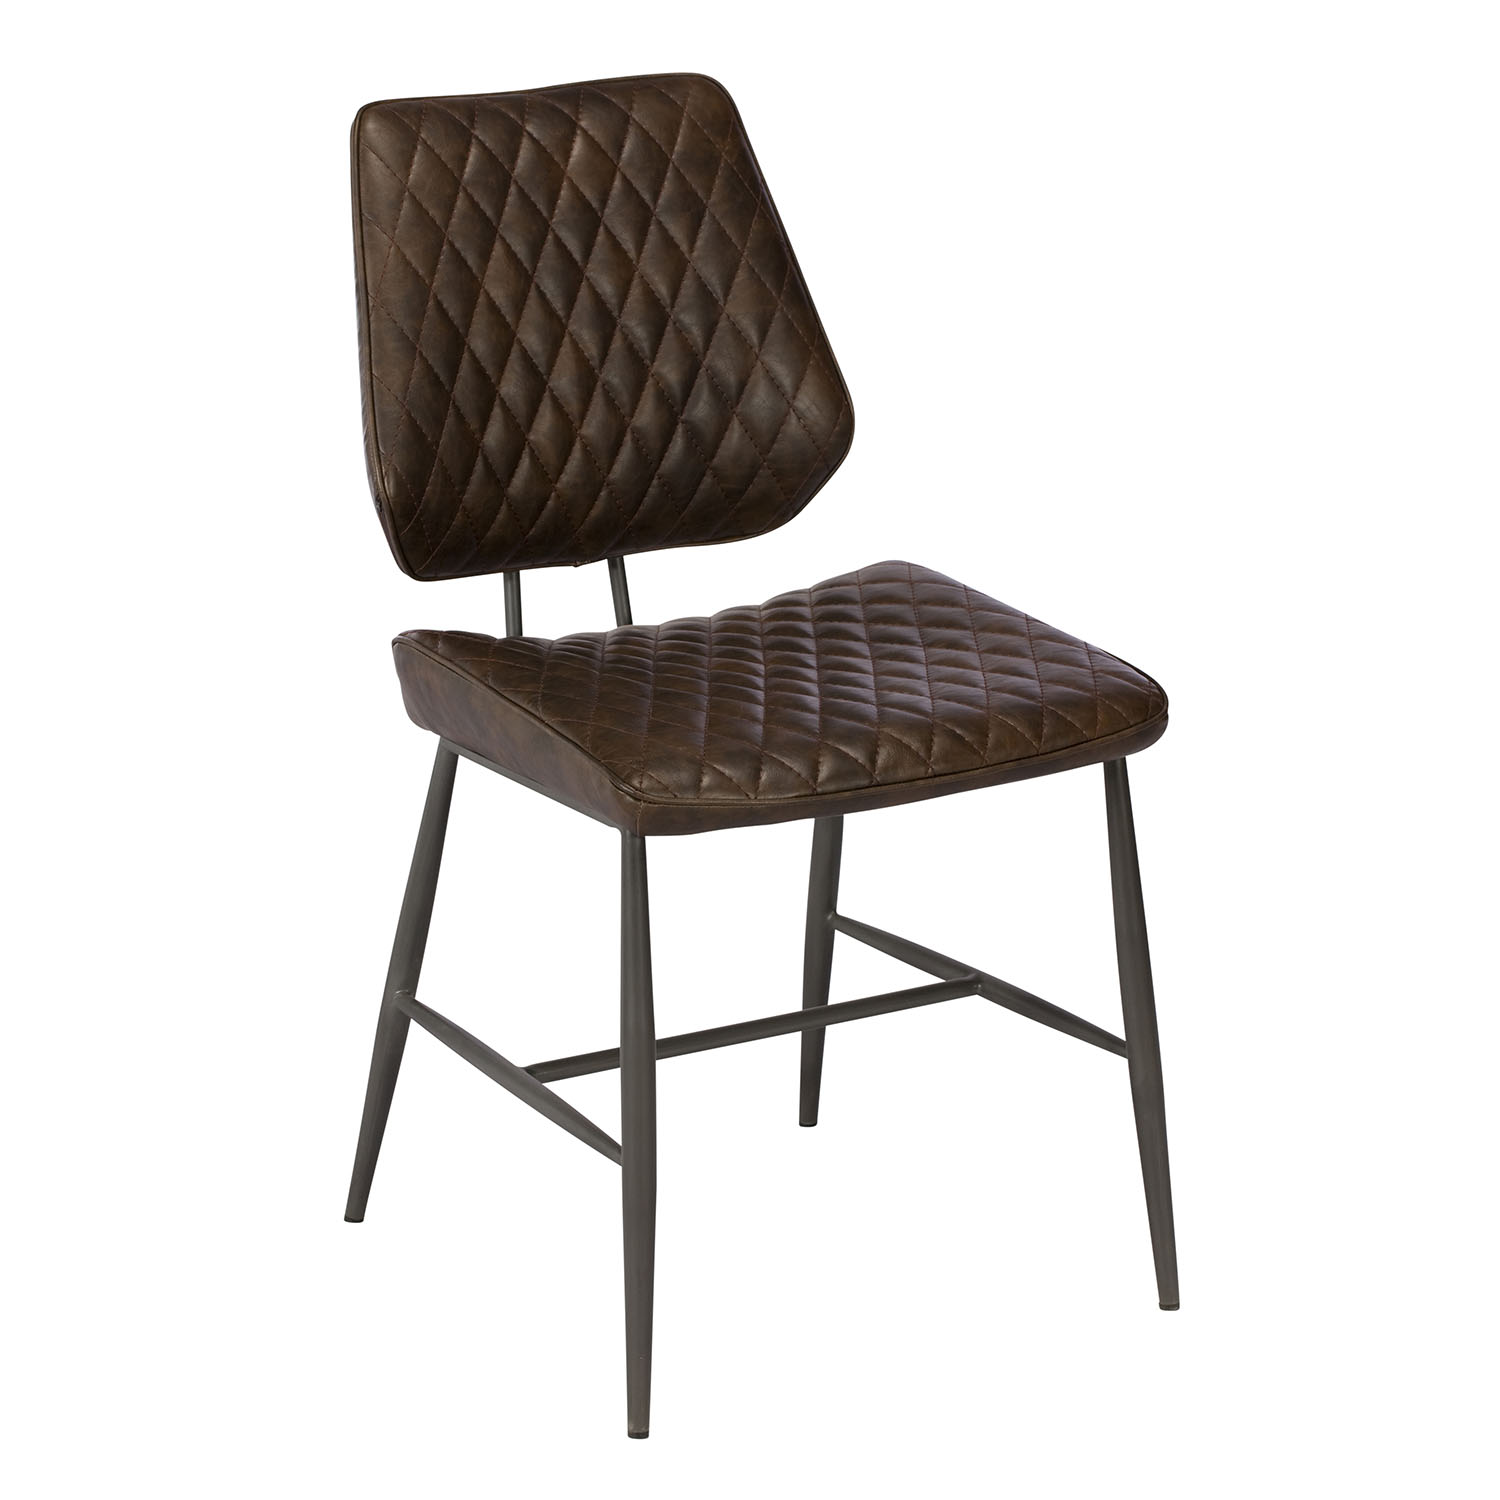 Dalton Dining Chair Dark Brown